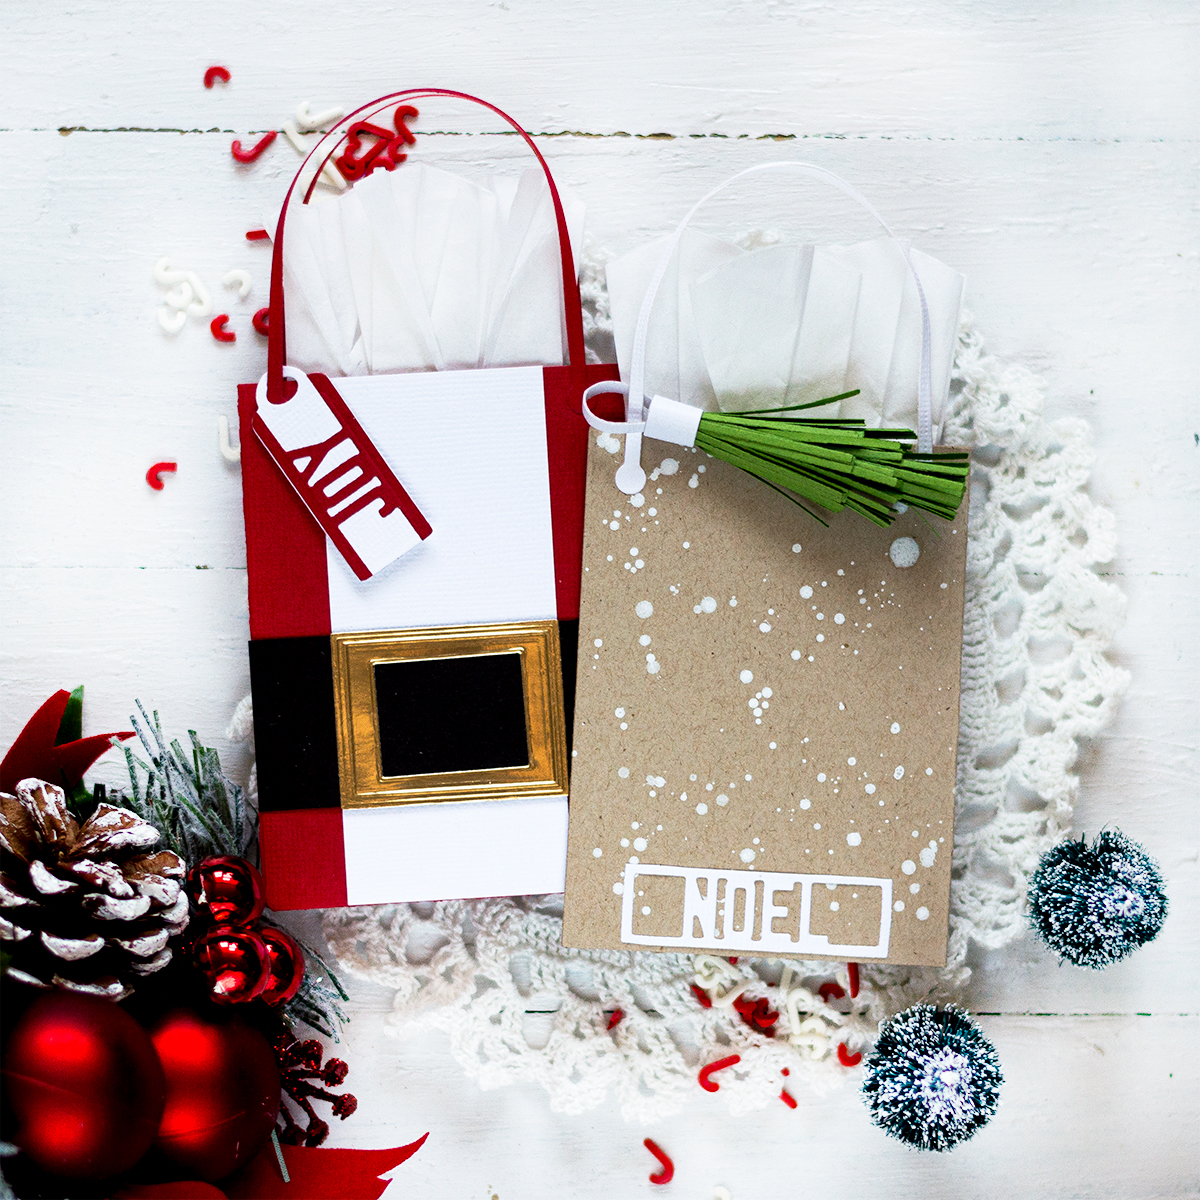 Christmas Gift Card Holders. Card by Svitlana Shayevich